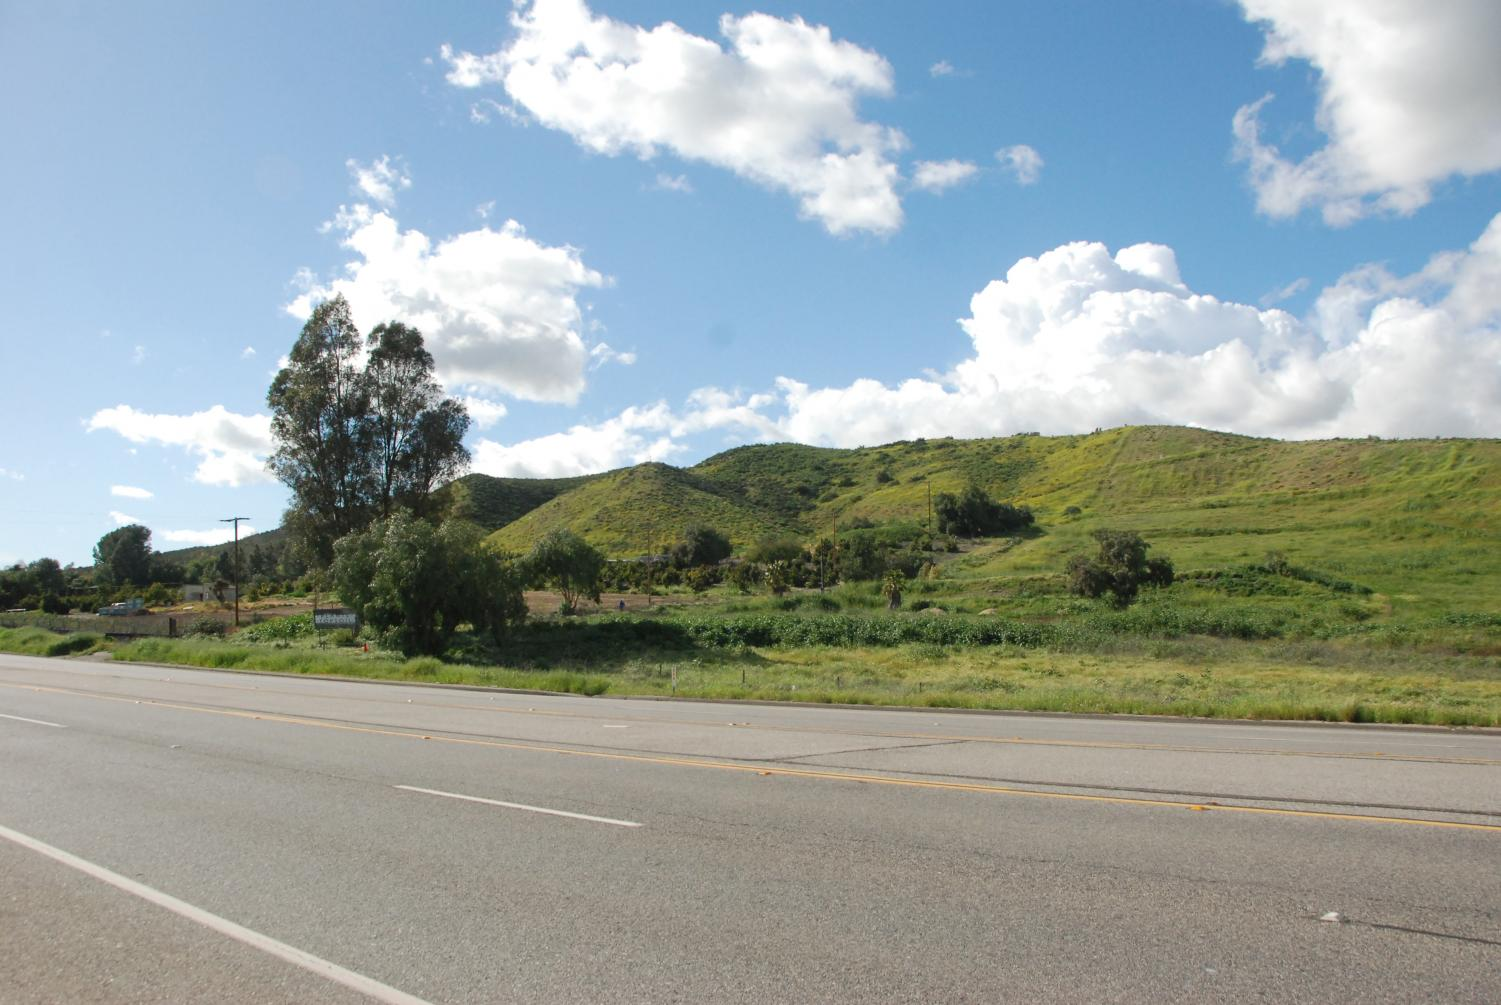 Hills pictured by Tierra Rejada Road in Simi Valley will be one of three potential wildlife corridor zones.